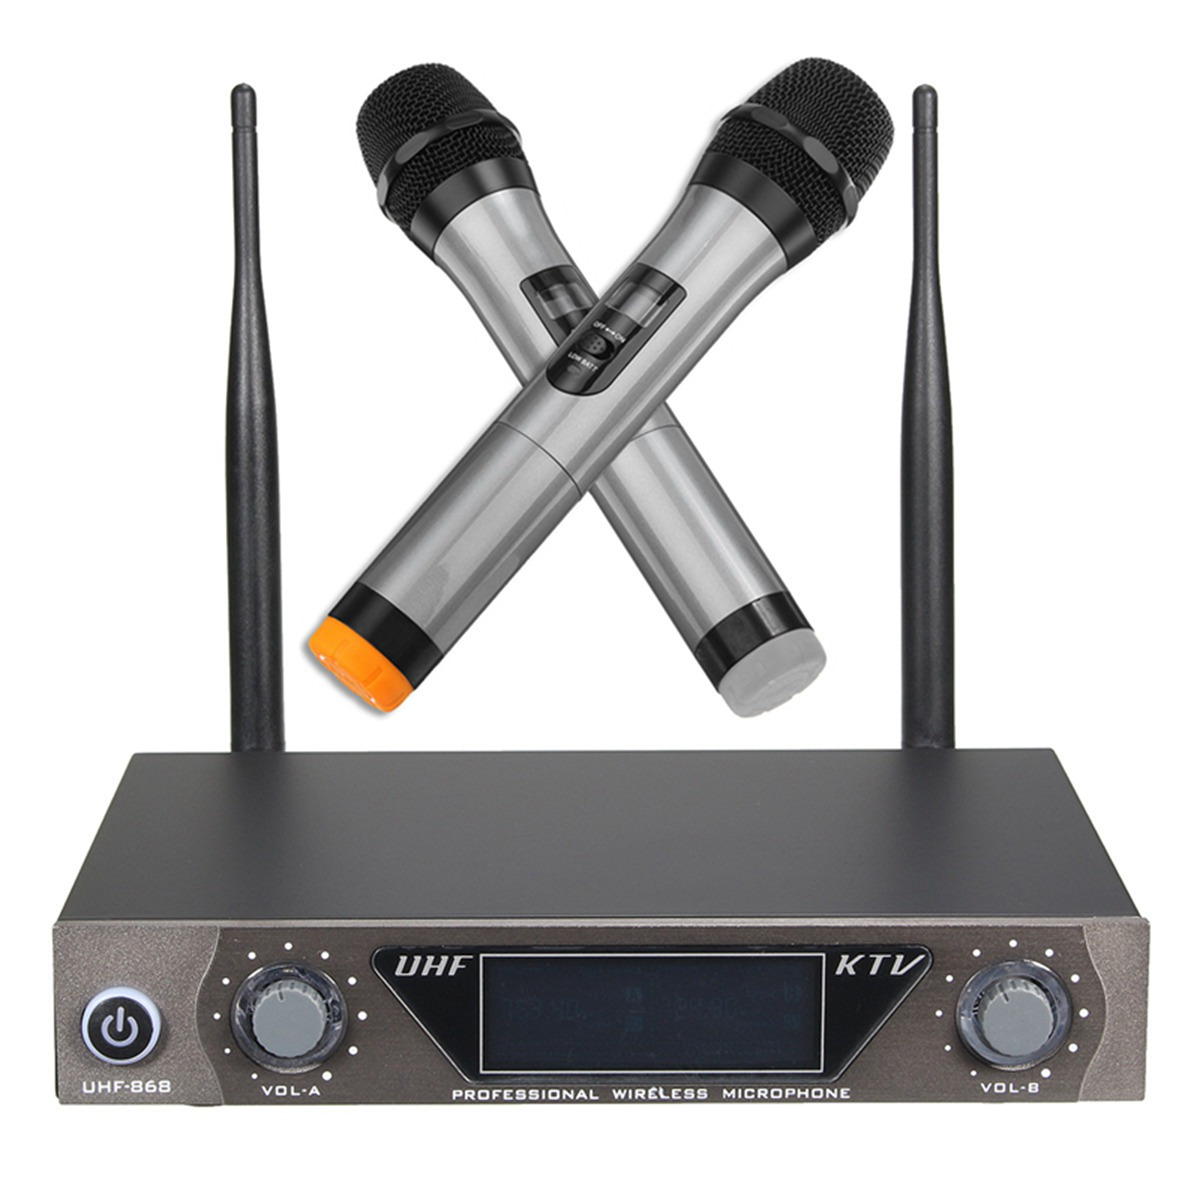 Professional UHF Wireless Microphone System With 2 Handheld Mic Dual Channel UHF Transmitter Microphone Systerm For Karaoke free shipping uhf professional s24 b 58 wireless microphone cordless karaoke system with handheld transmitter band r5 800 820mhz